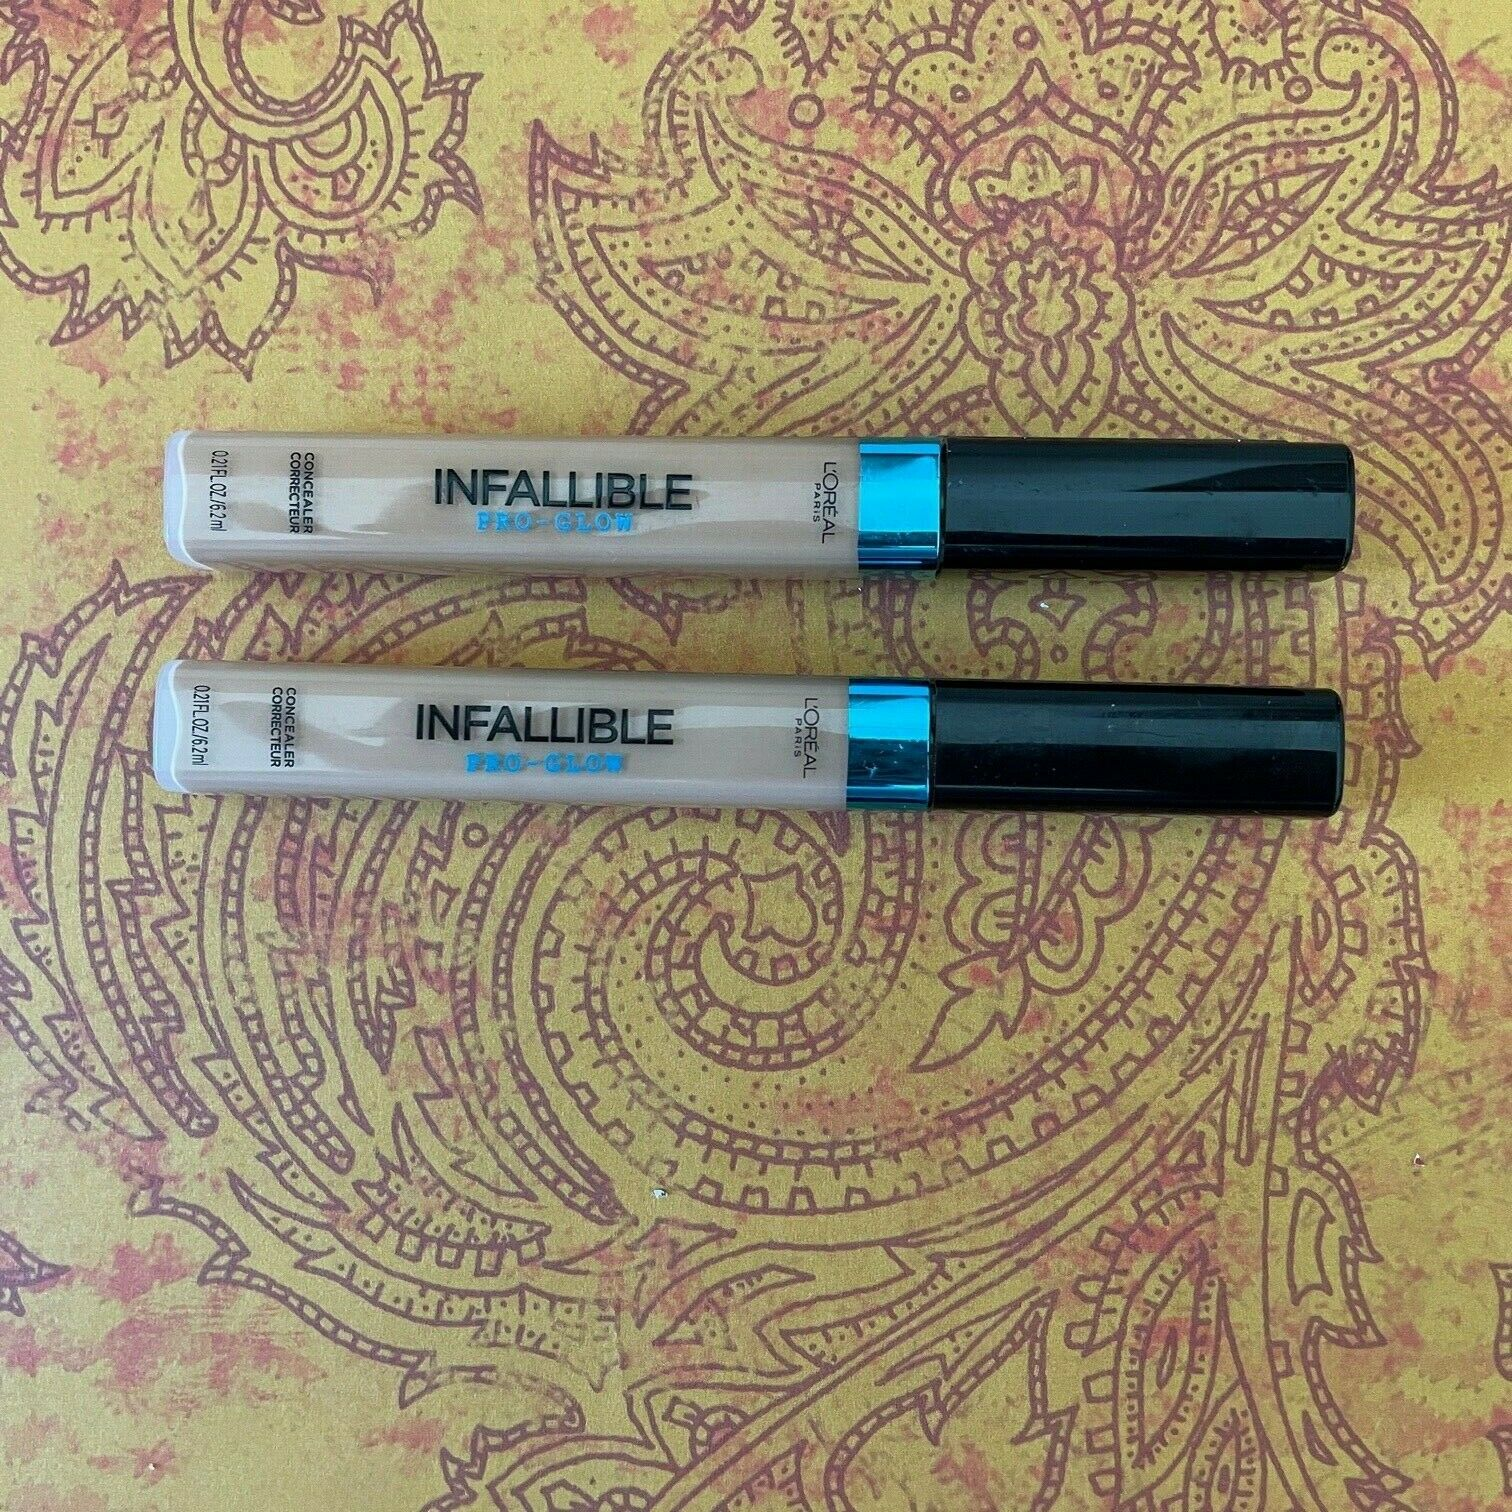 2X L Oreal Infallible Pro-Glow Concealer 04 Natural Beige - $10.45